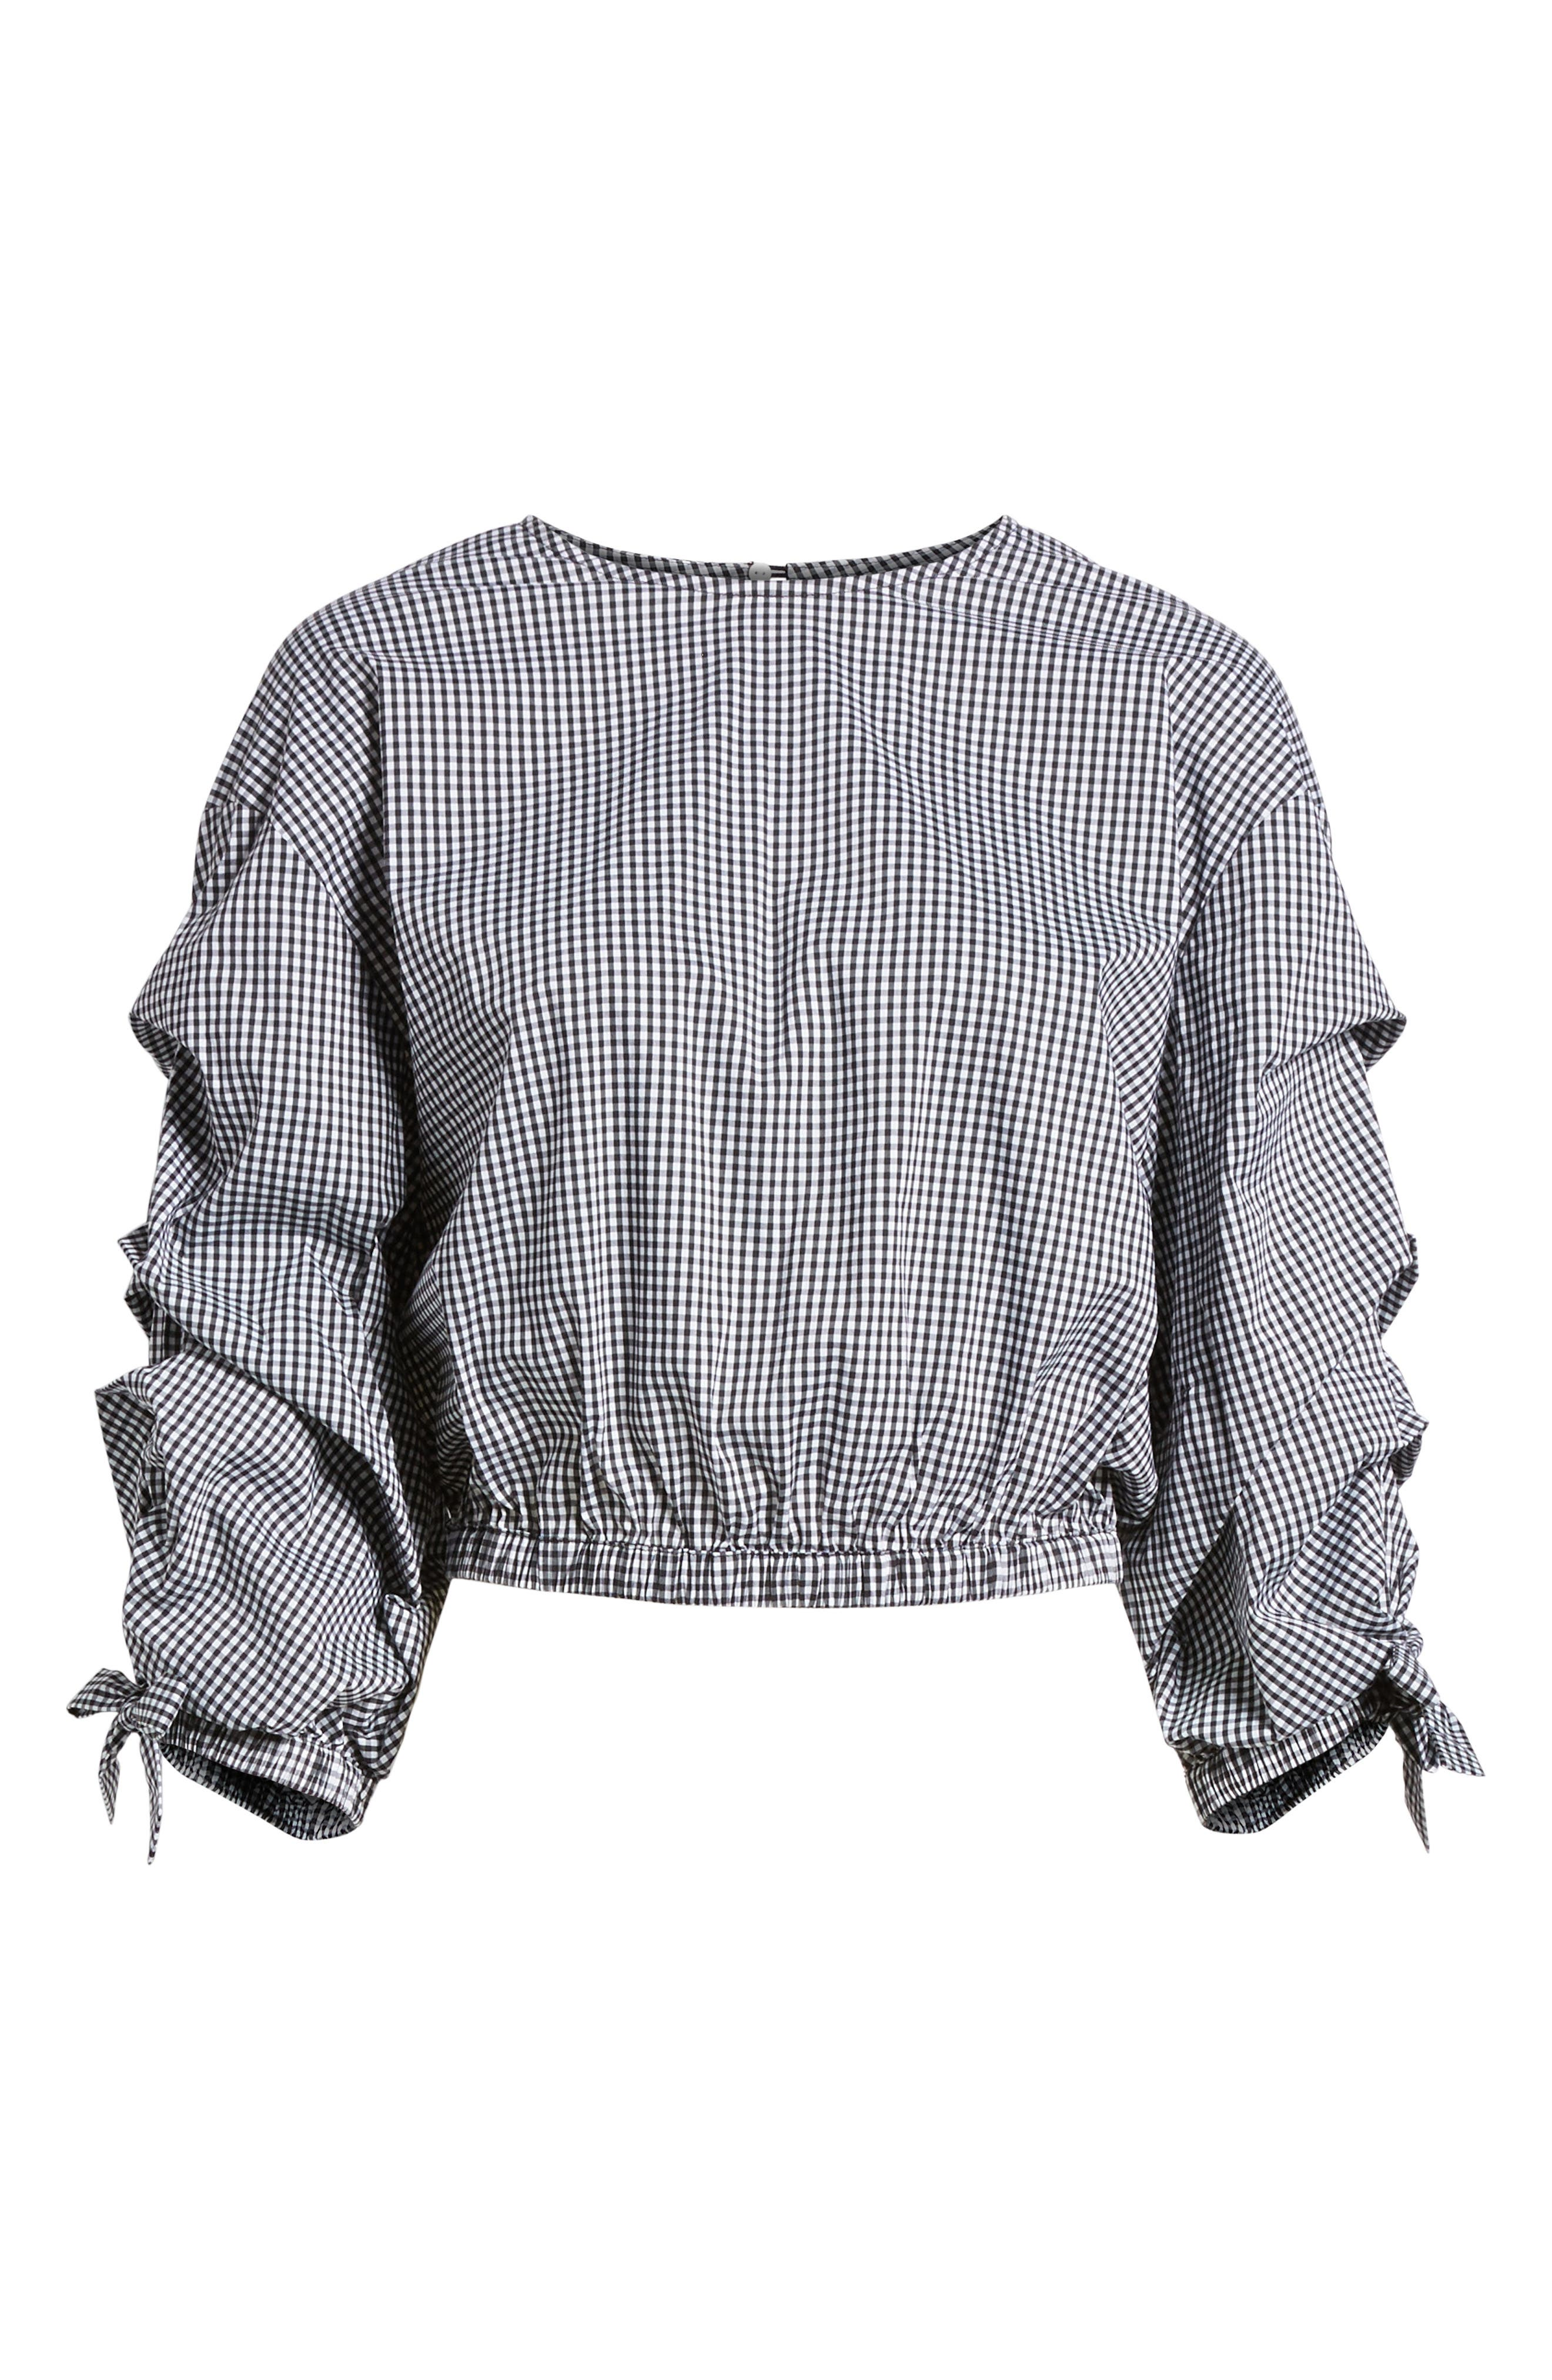 Bishop + Young Ruched Sleeve Blouse,                             Alternate thumbnail 7, color,                             Gingham